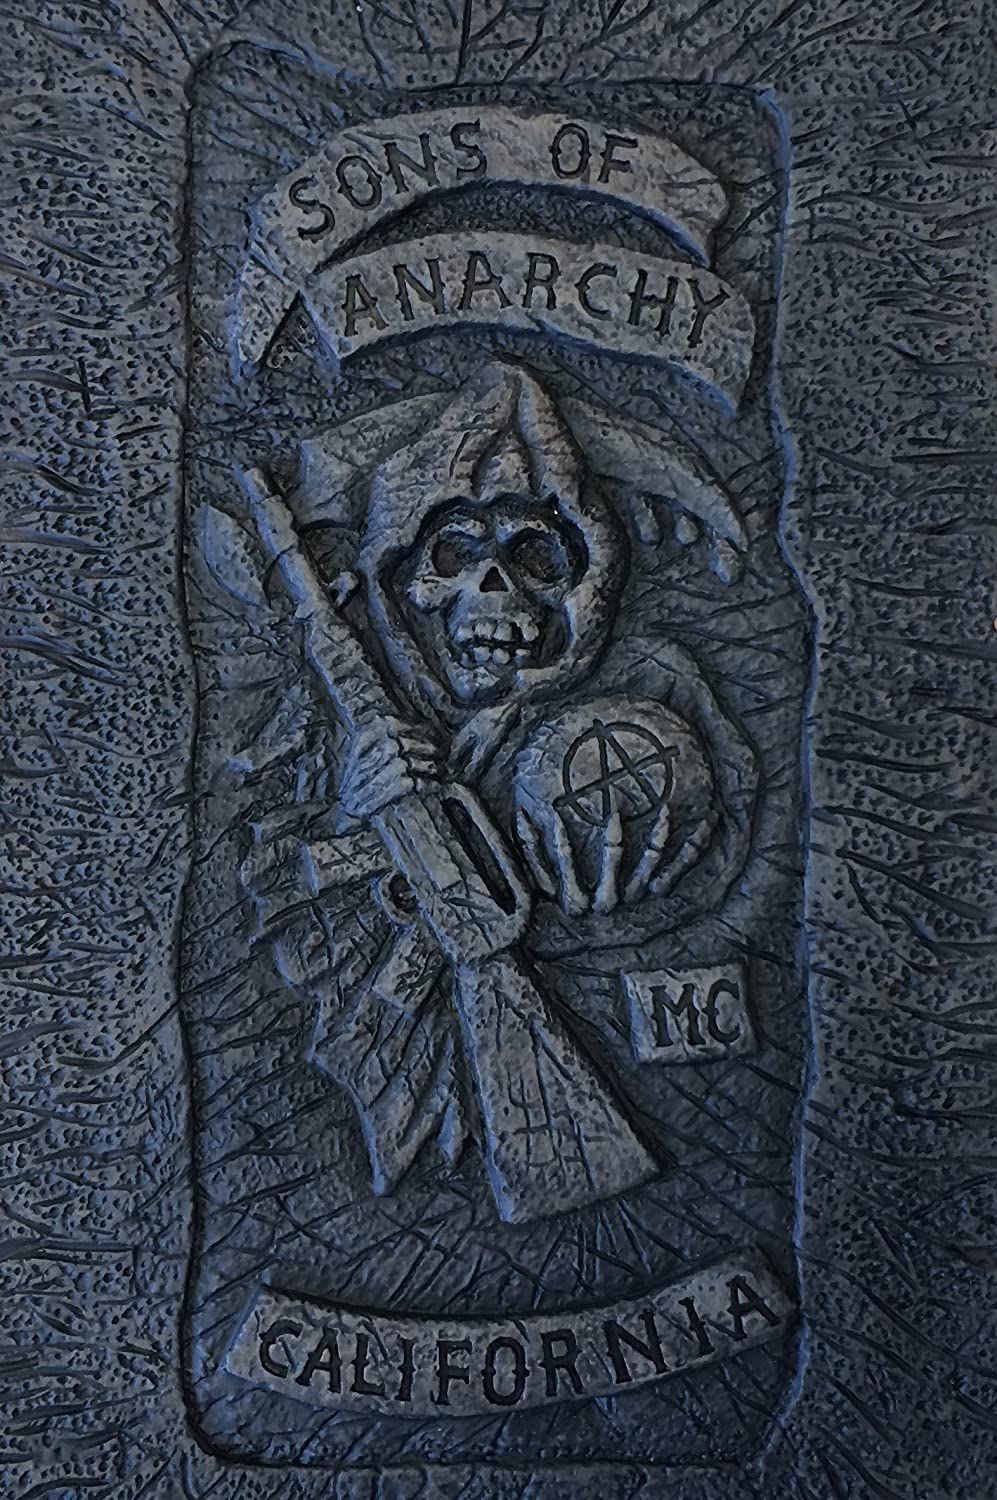 7 Sam Crow Ideas In 2021 Sons Of Anarchy Sons Of Anarchy Samcro Anarchy